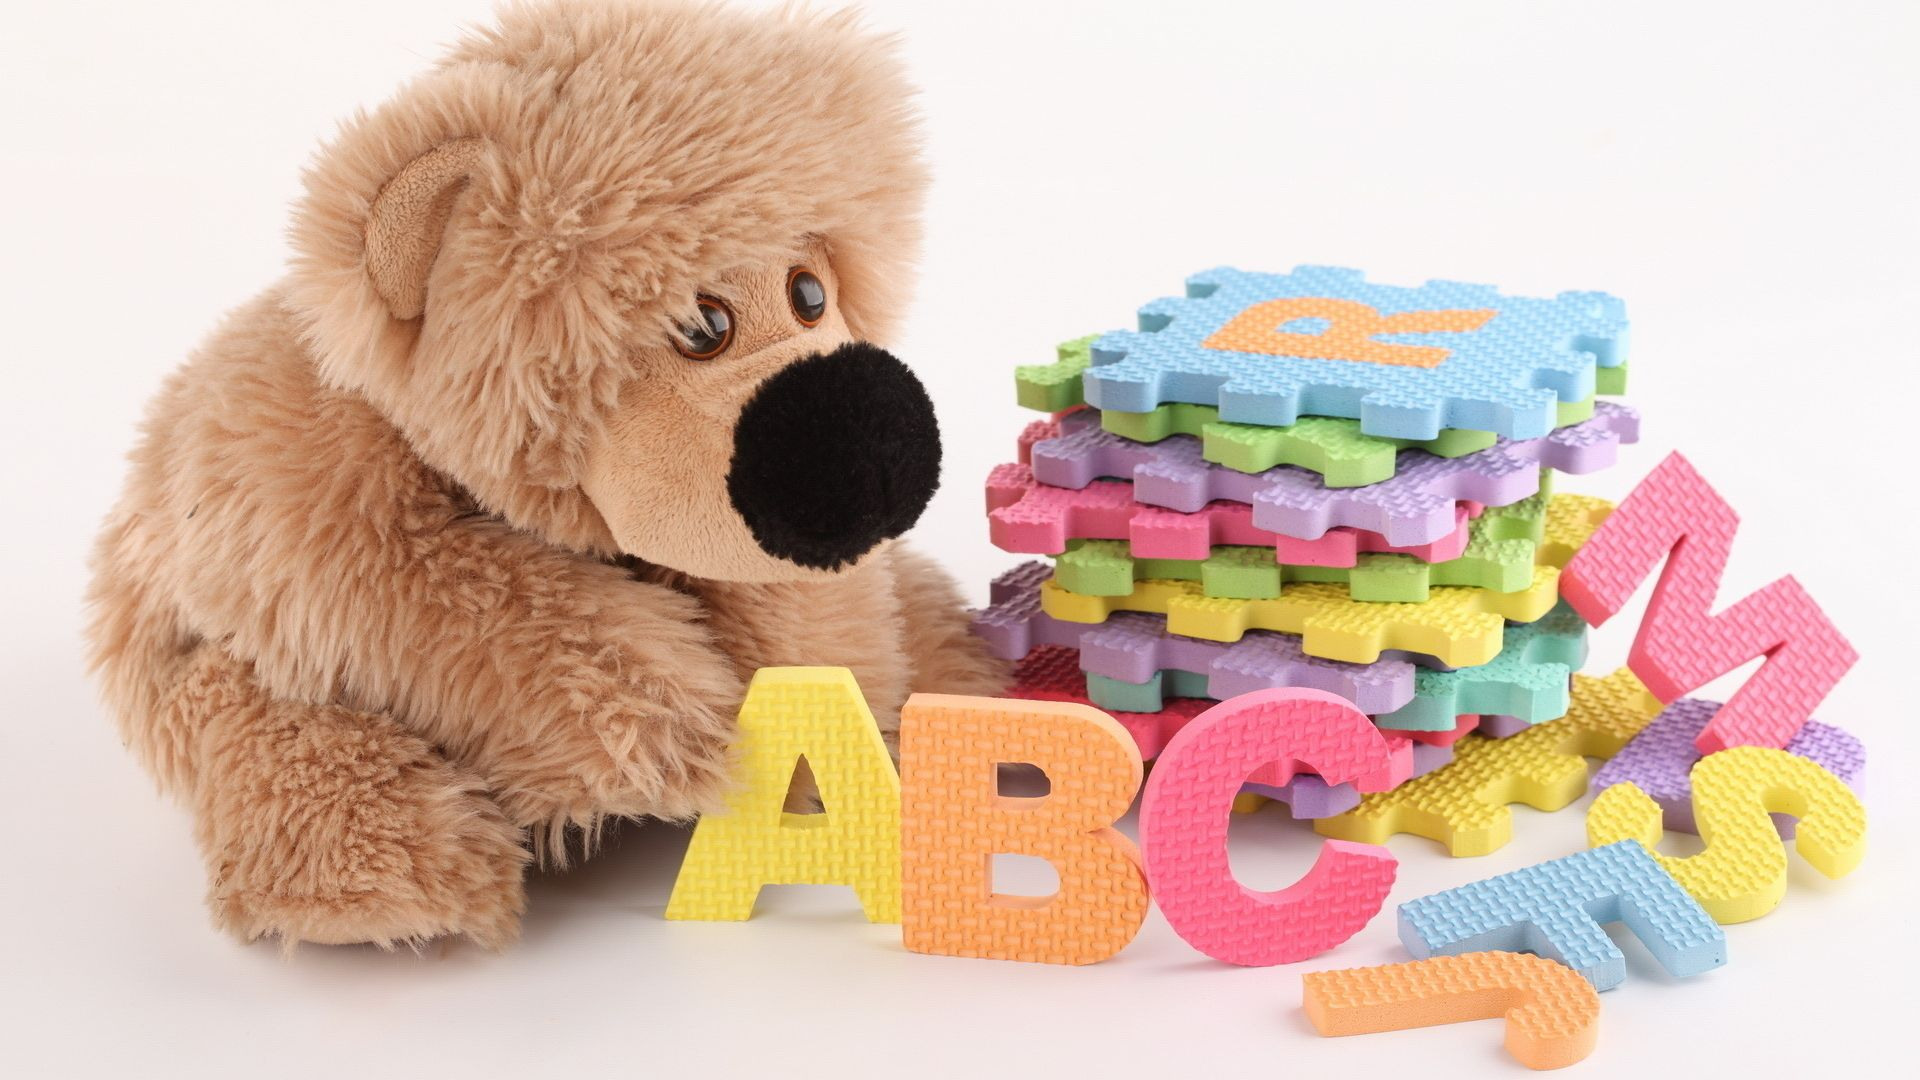 bear,a,c,toy,love,teddy,making love,brook,teddy bear,yield,b,passion,lovemaking,slip,conduct,dear,with